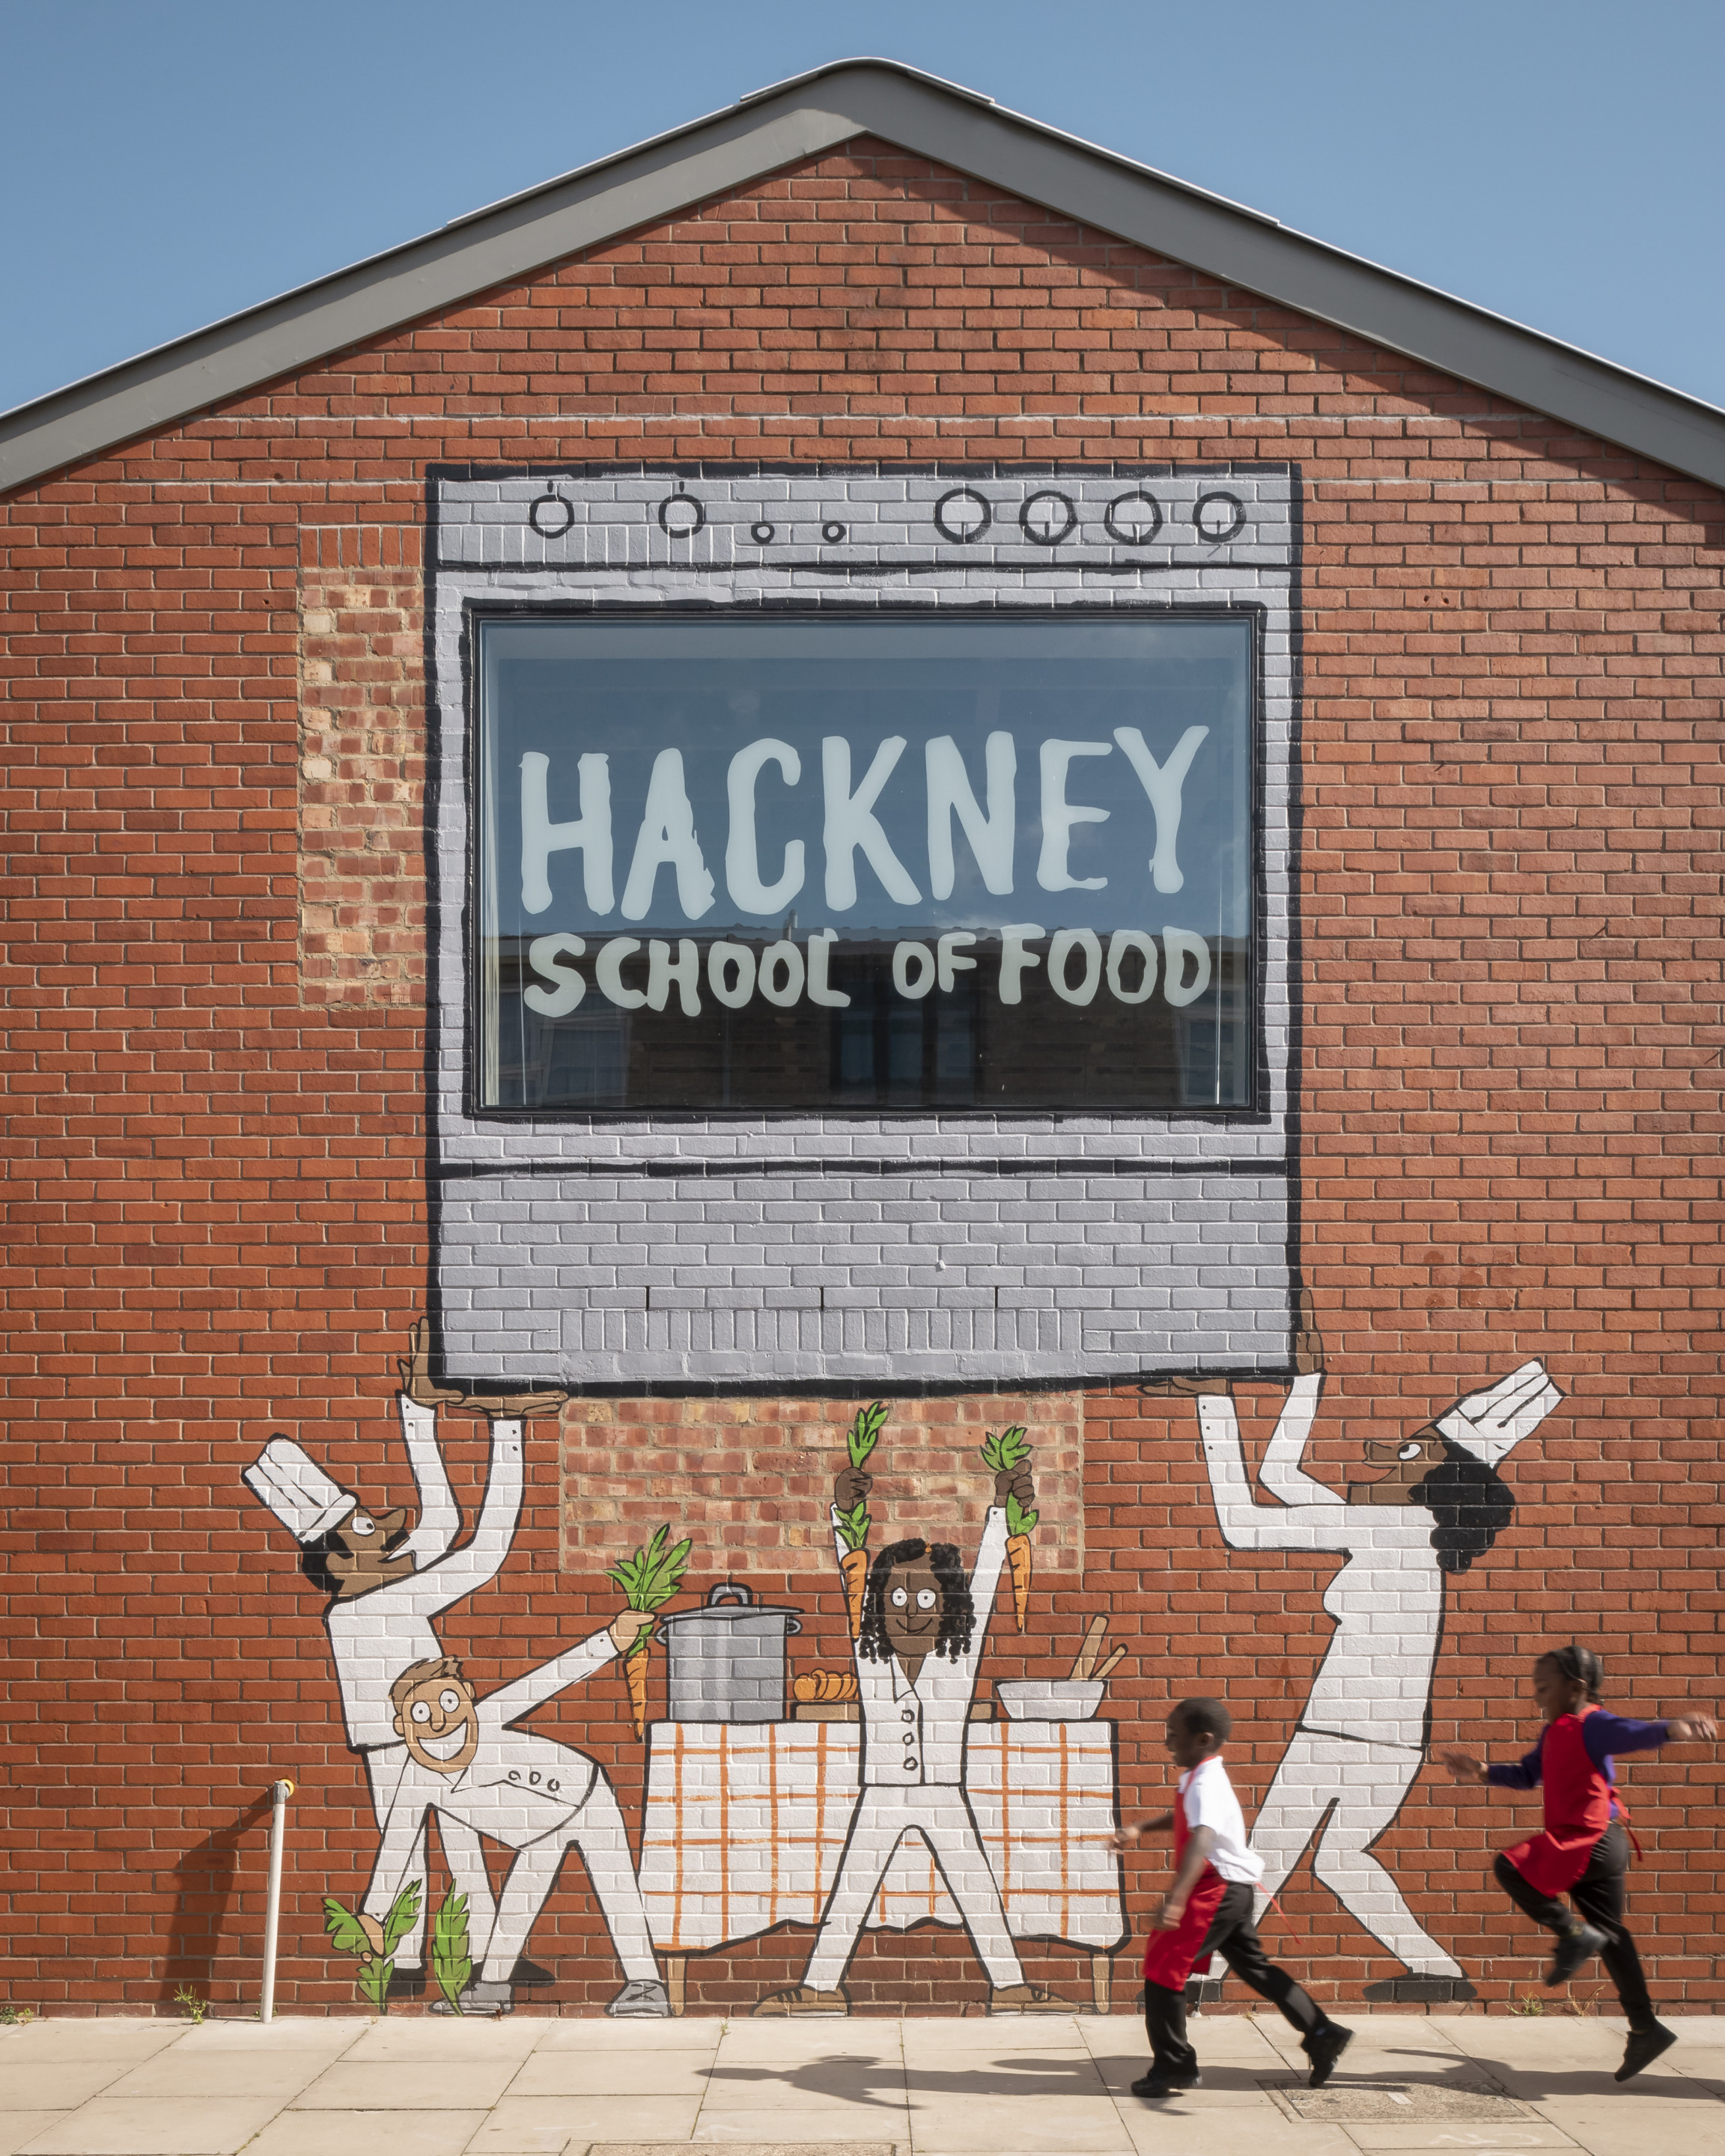 A mural that reads hackney school of food